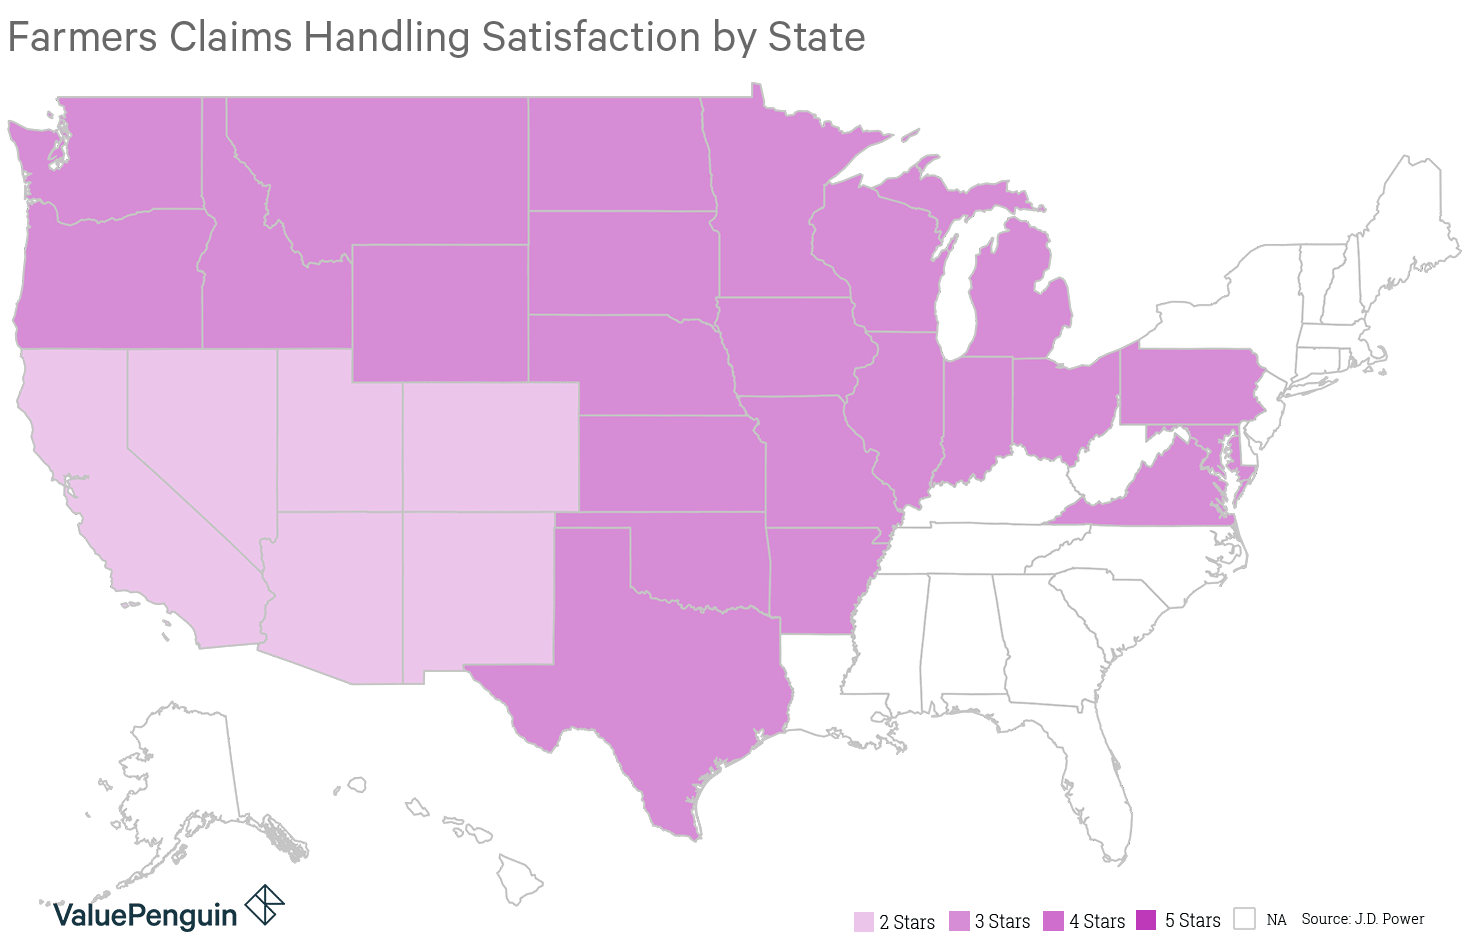 Map shows how Farmers customer satisfaction varies by state